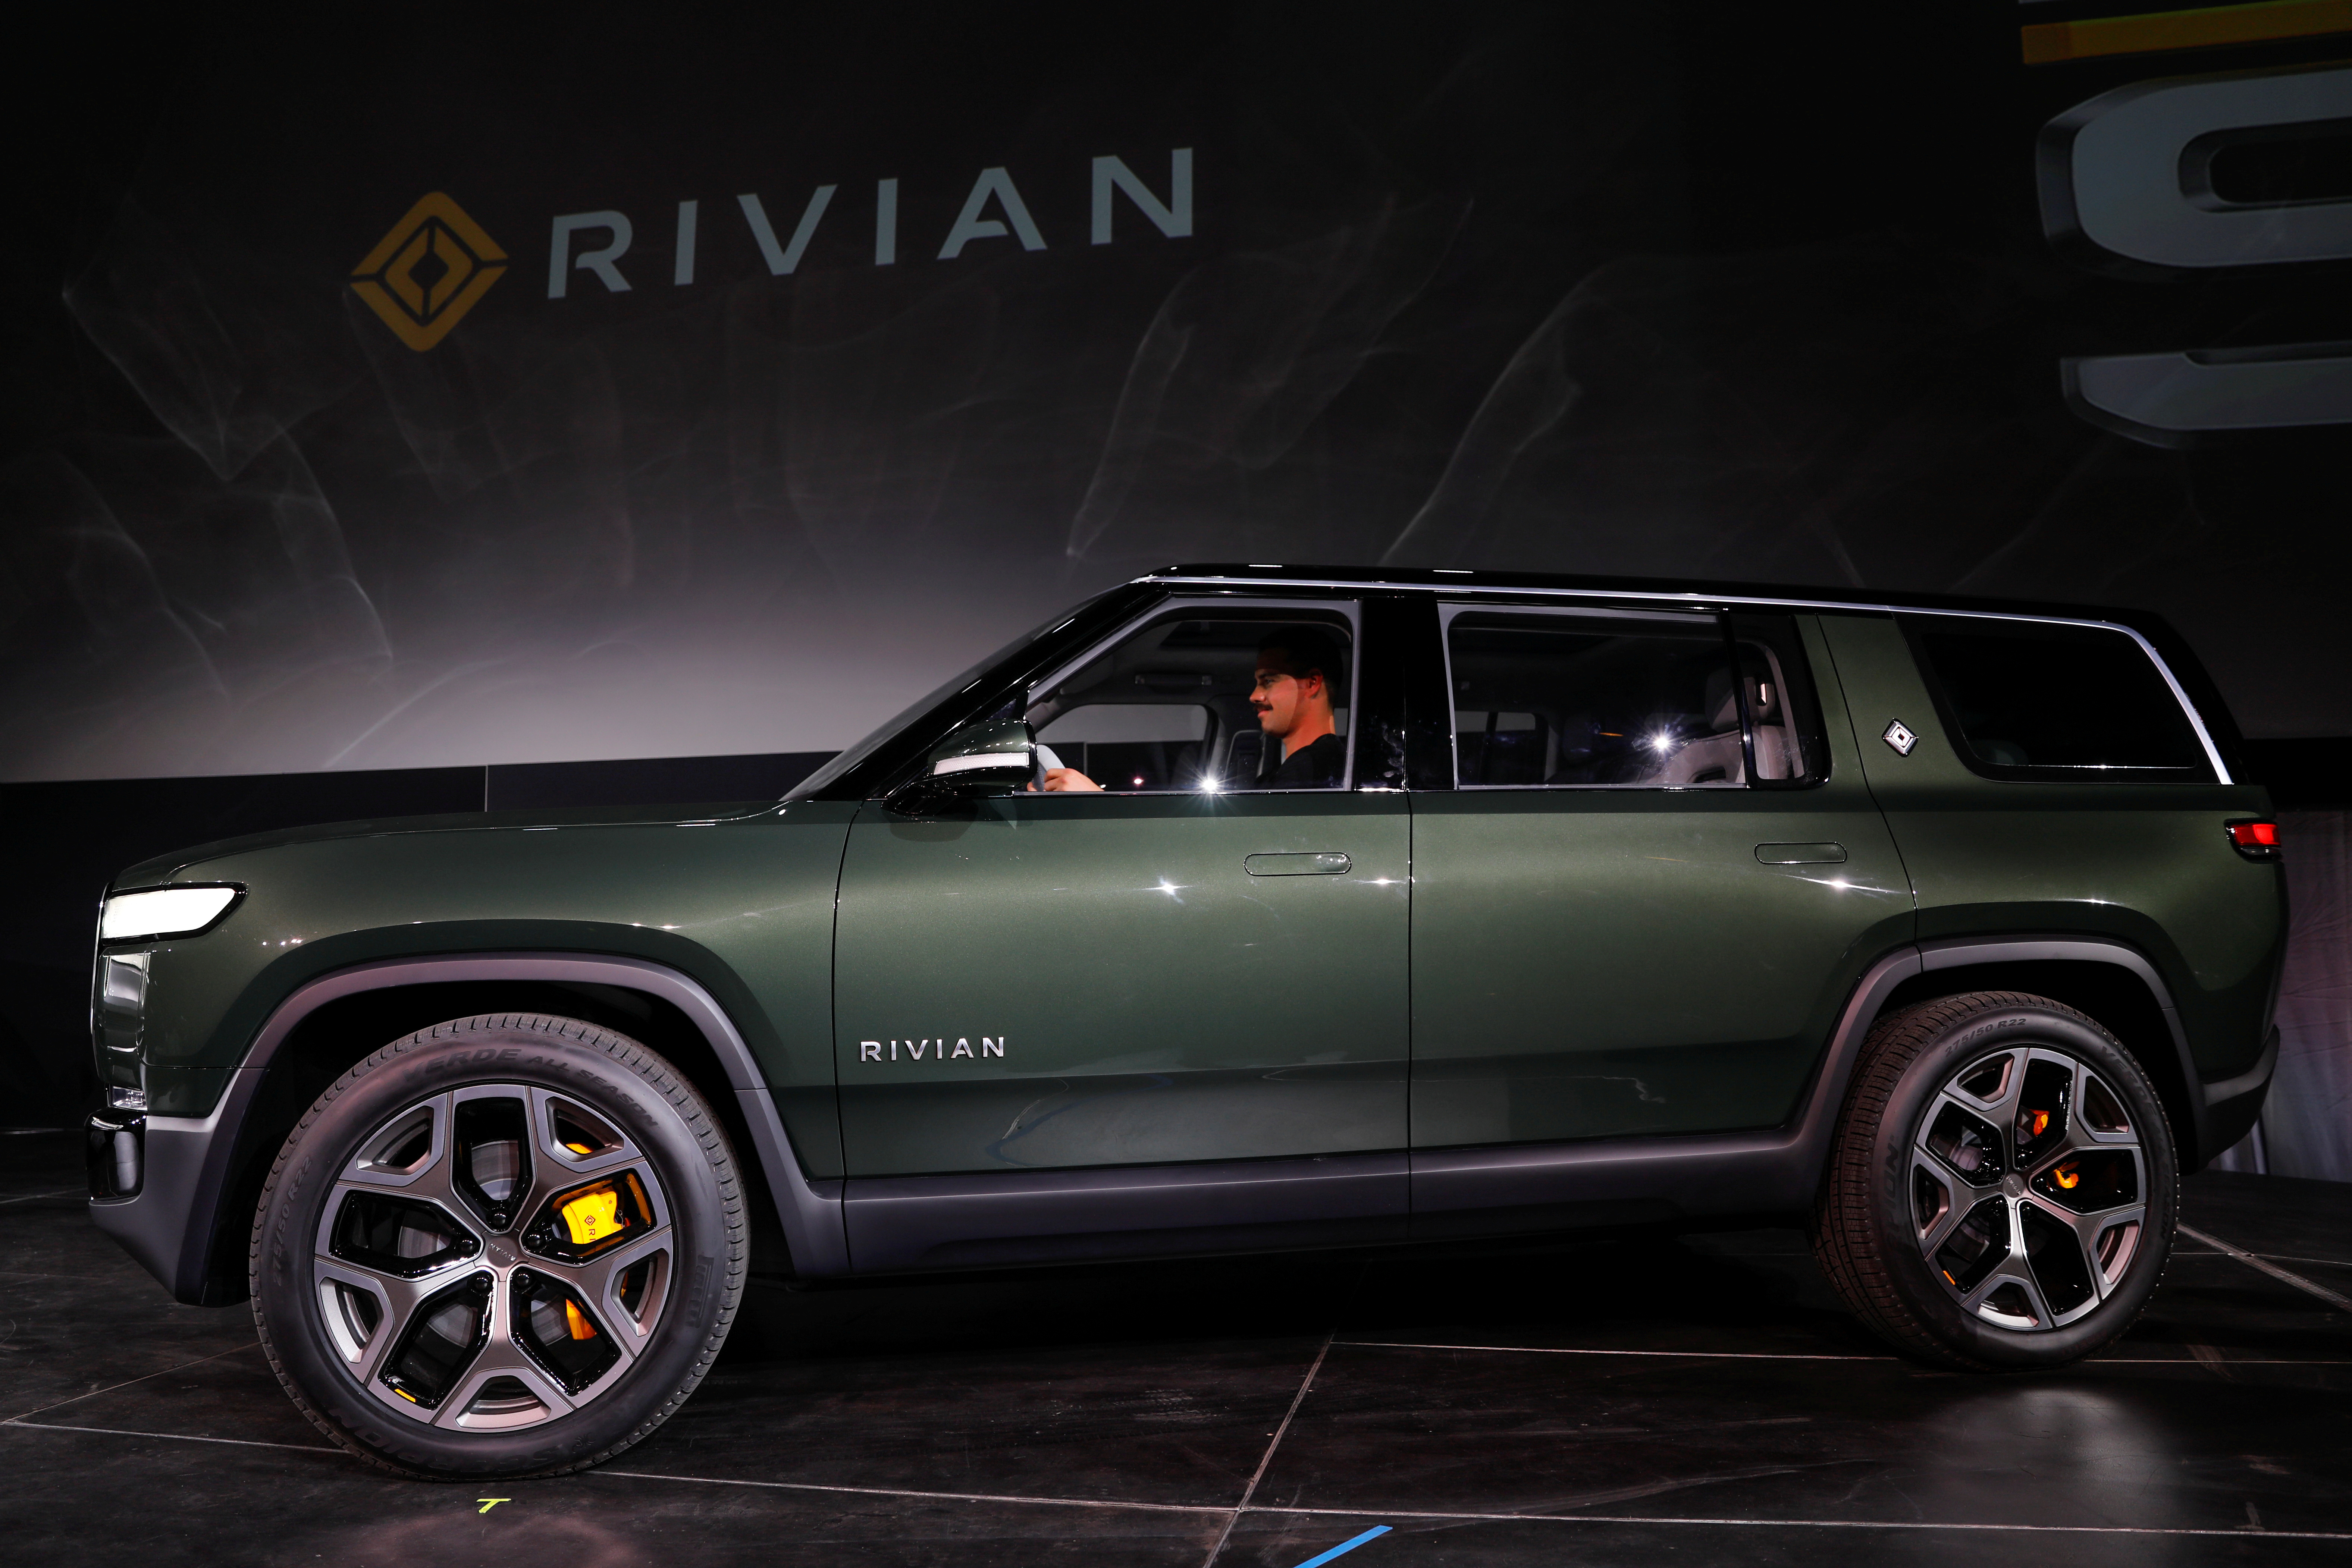 Rivian introduces all-electric R1S SUV at Los Angeles Auto Show in Los Angeles, California, U.S. November 27, 2018.  REUTERS/Mike Blake